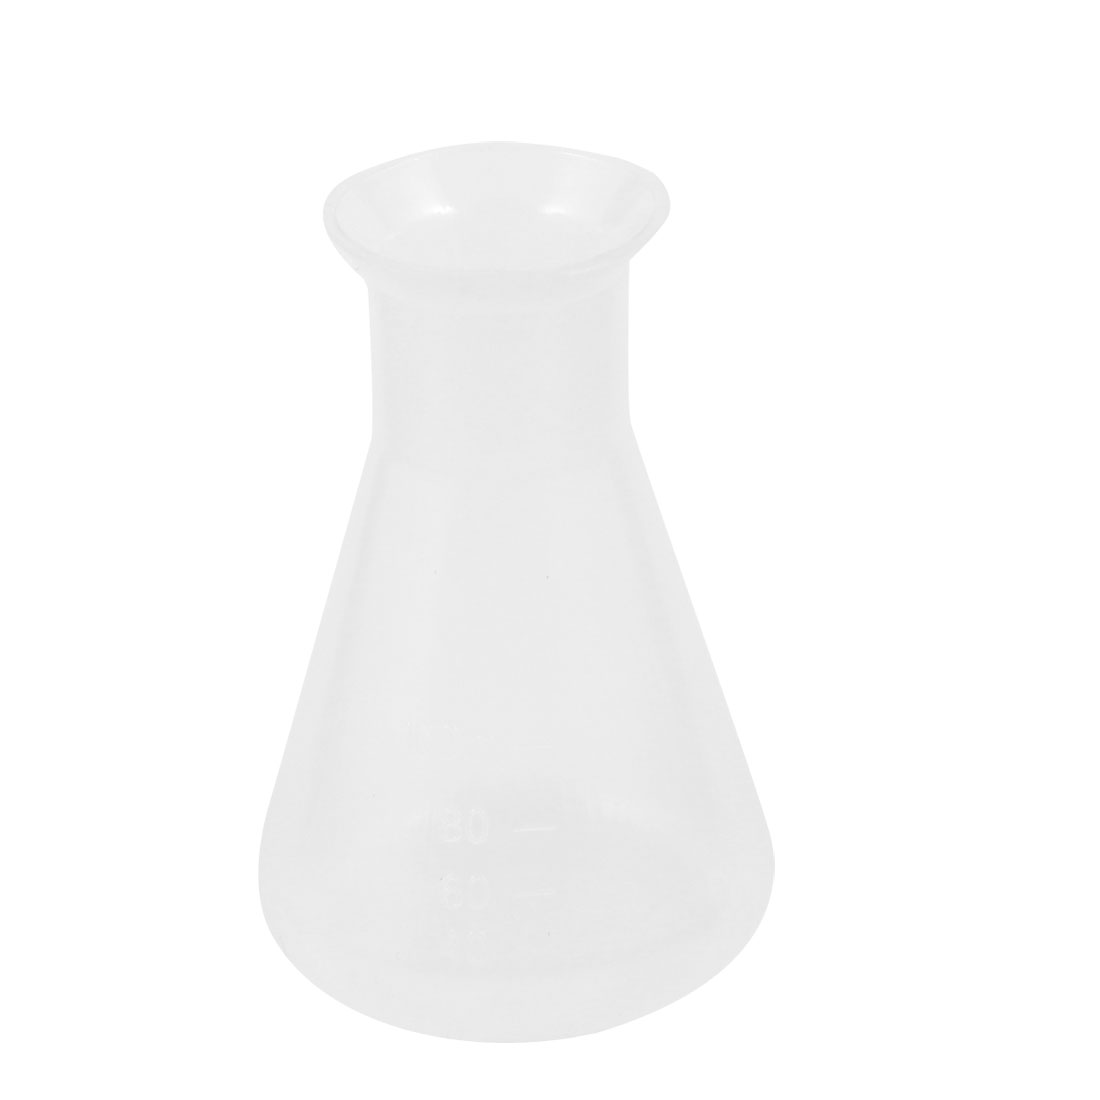 100ml Clear White Laboratory Liquid Bottle Plastic Conical Flask